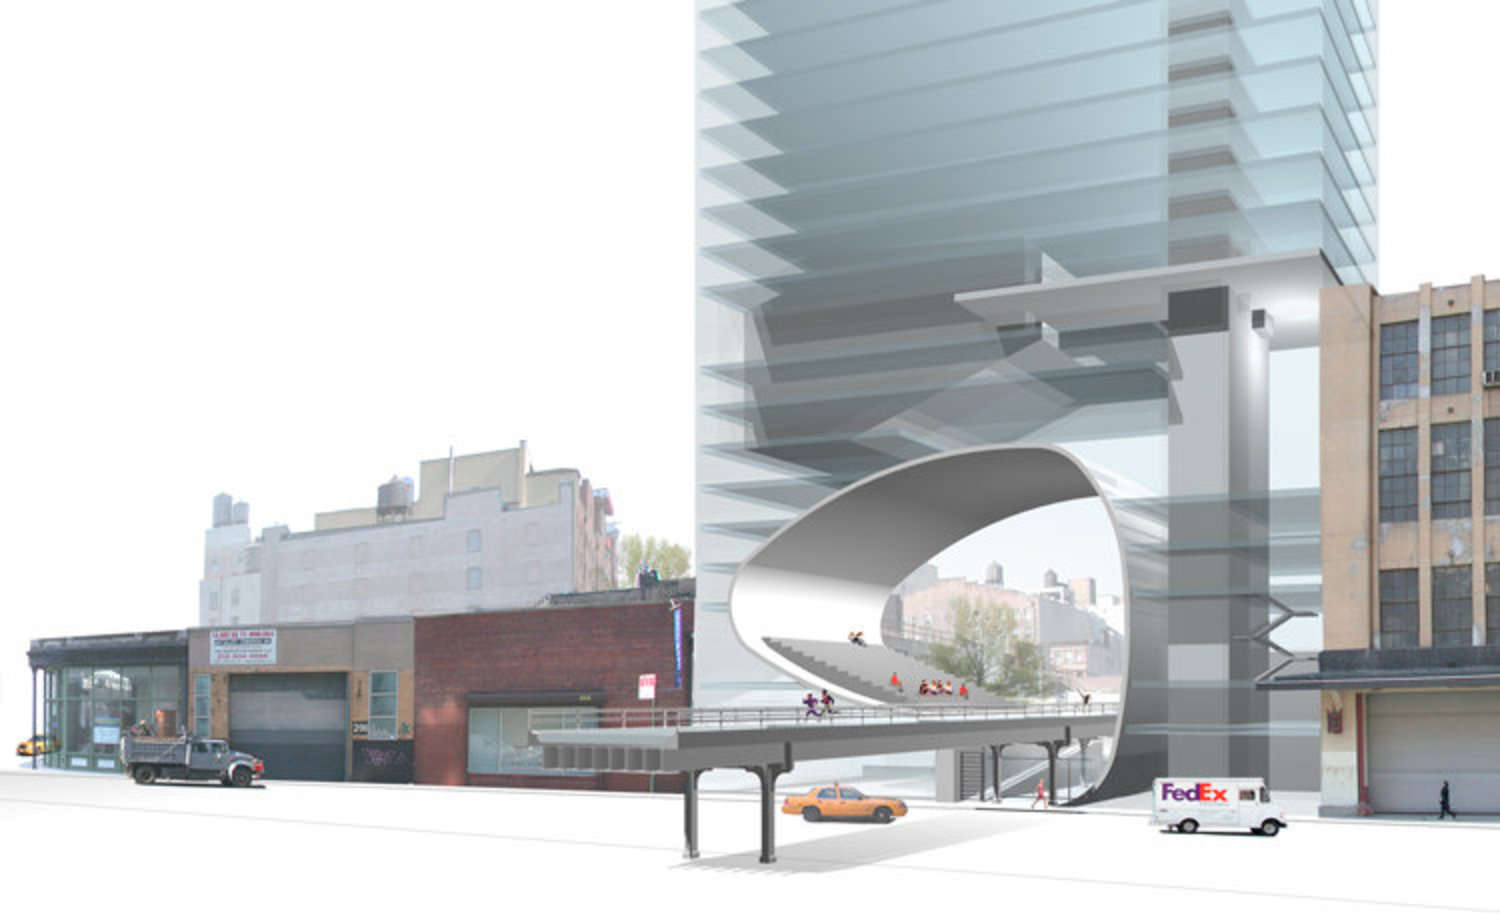 Alternate High Line Proposal from 2003